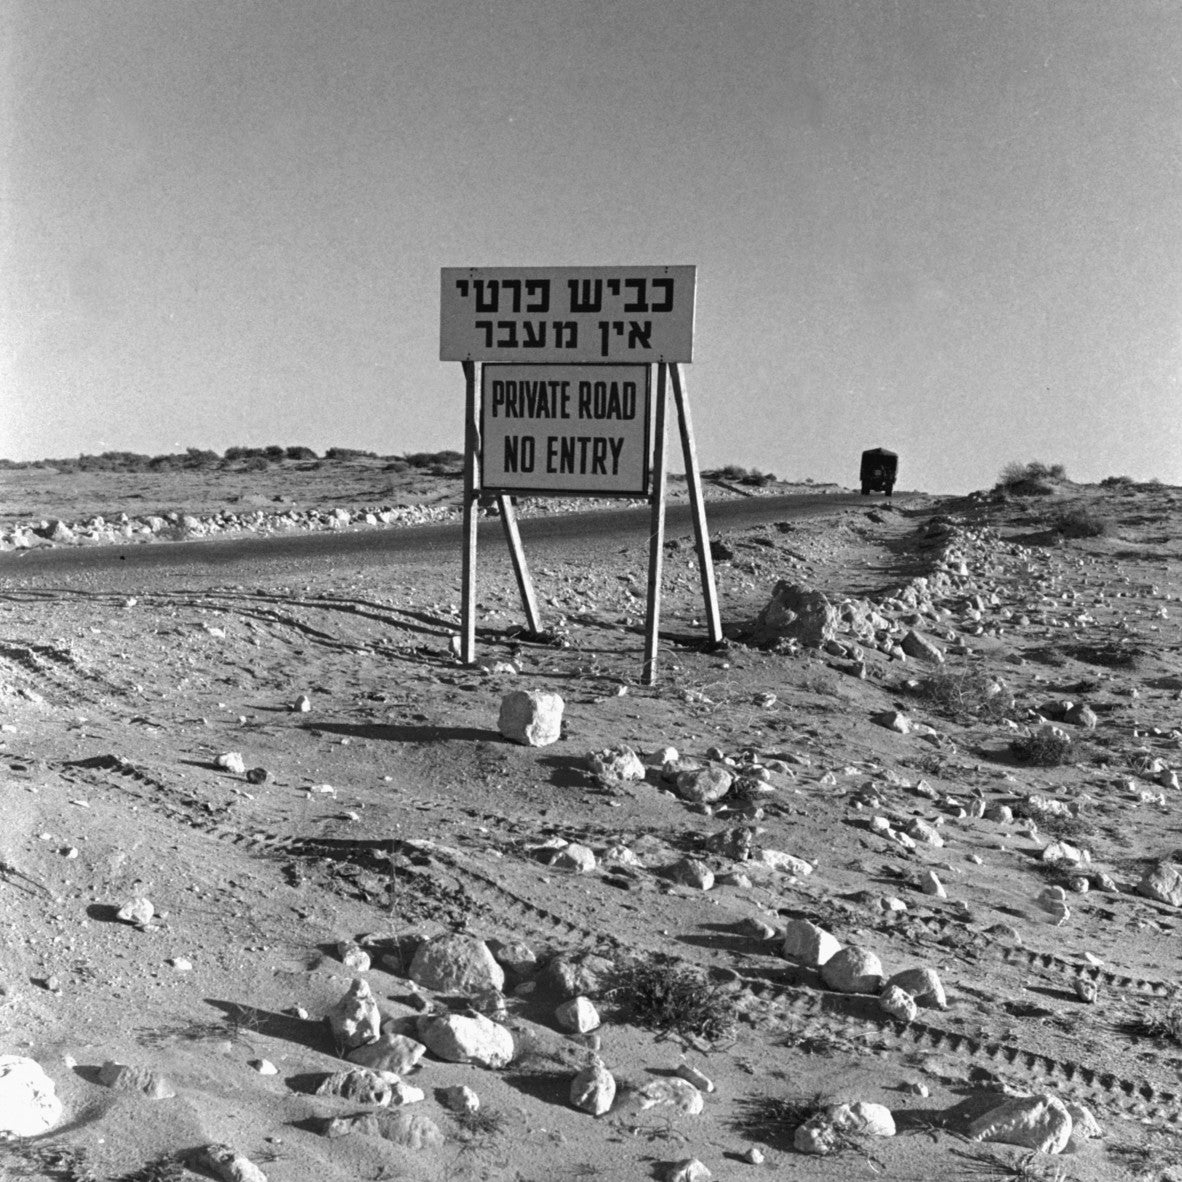 A nuclear reactor rises from the desert at the Negev Nuclear Research Center in Dimona, Israel, 1960.